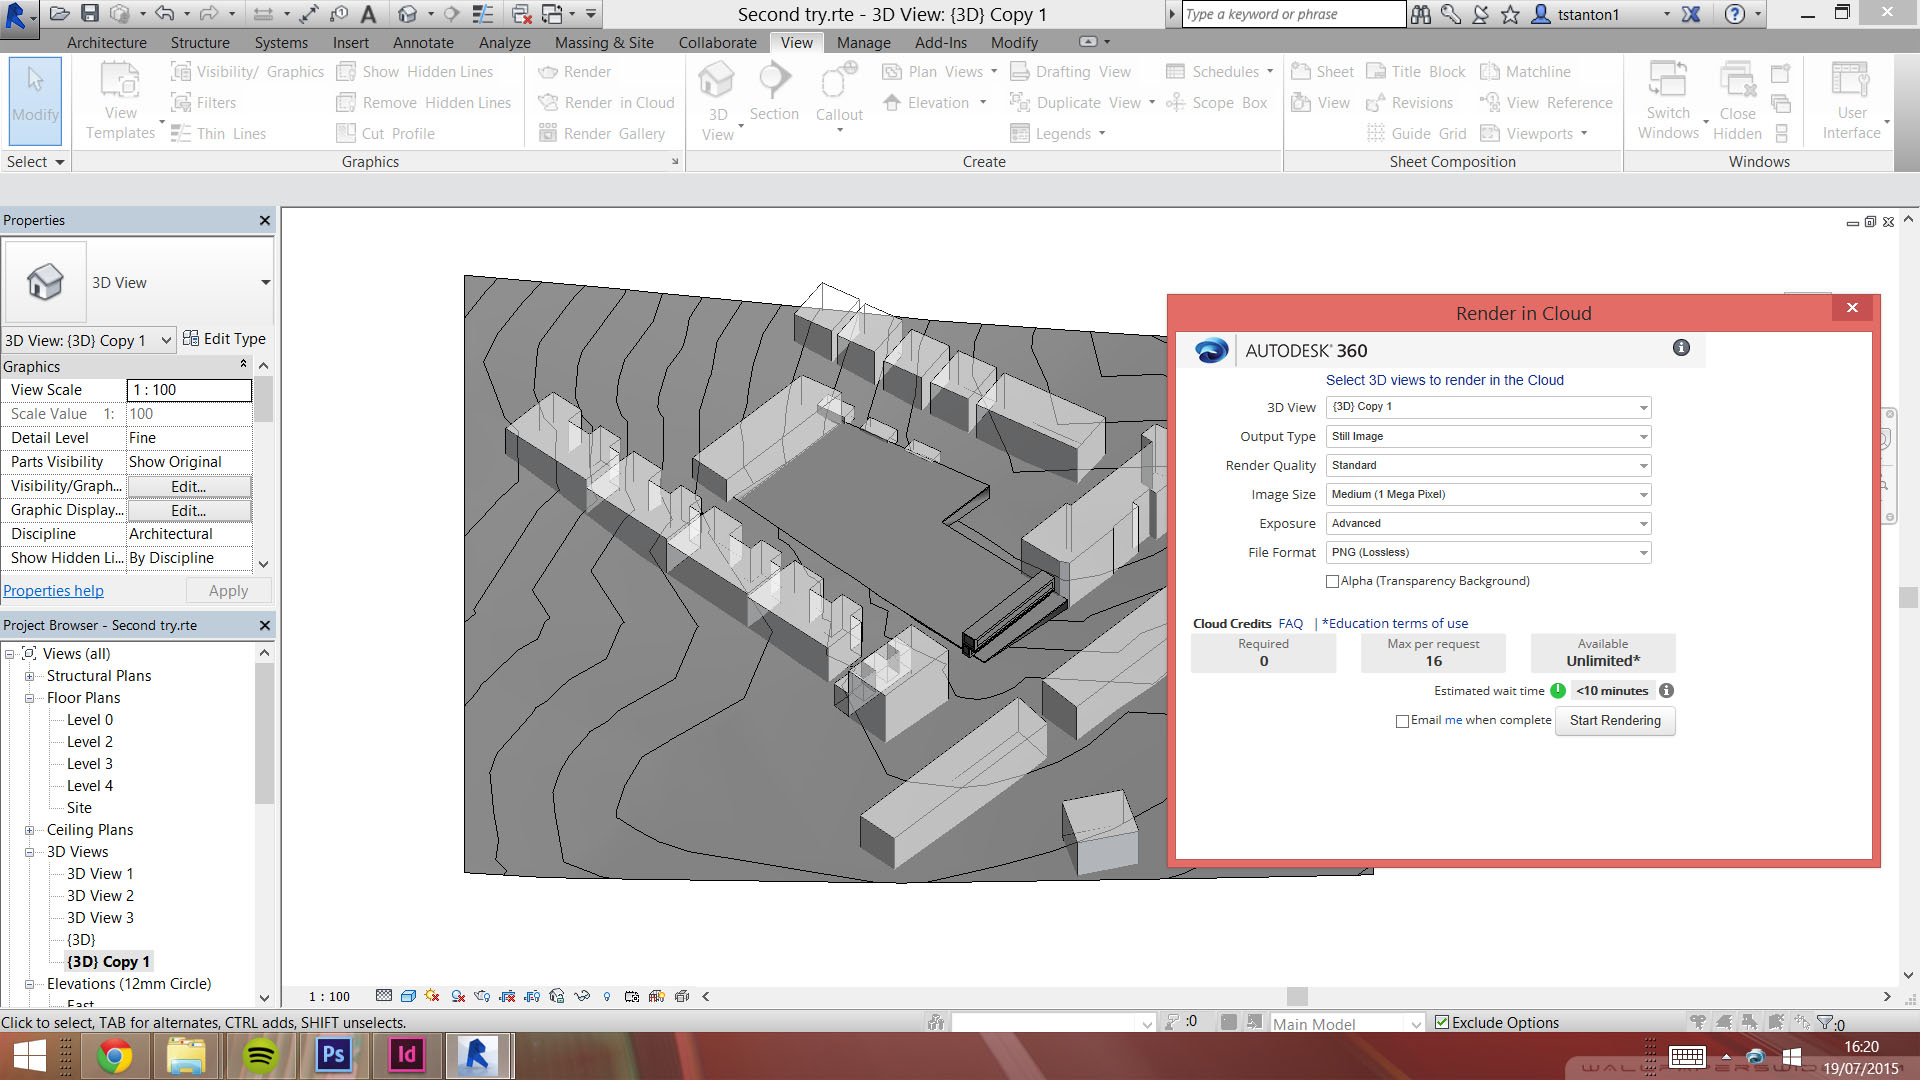 License period expired for energy simulation - Autodesk Community